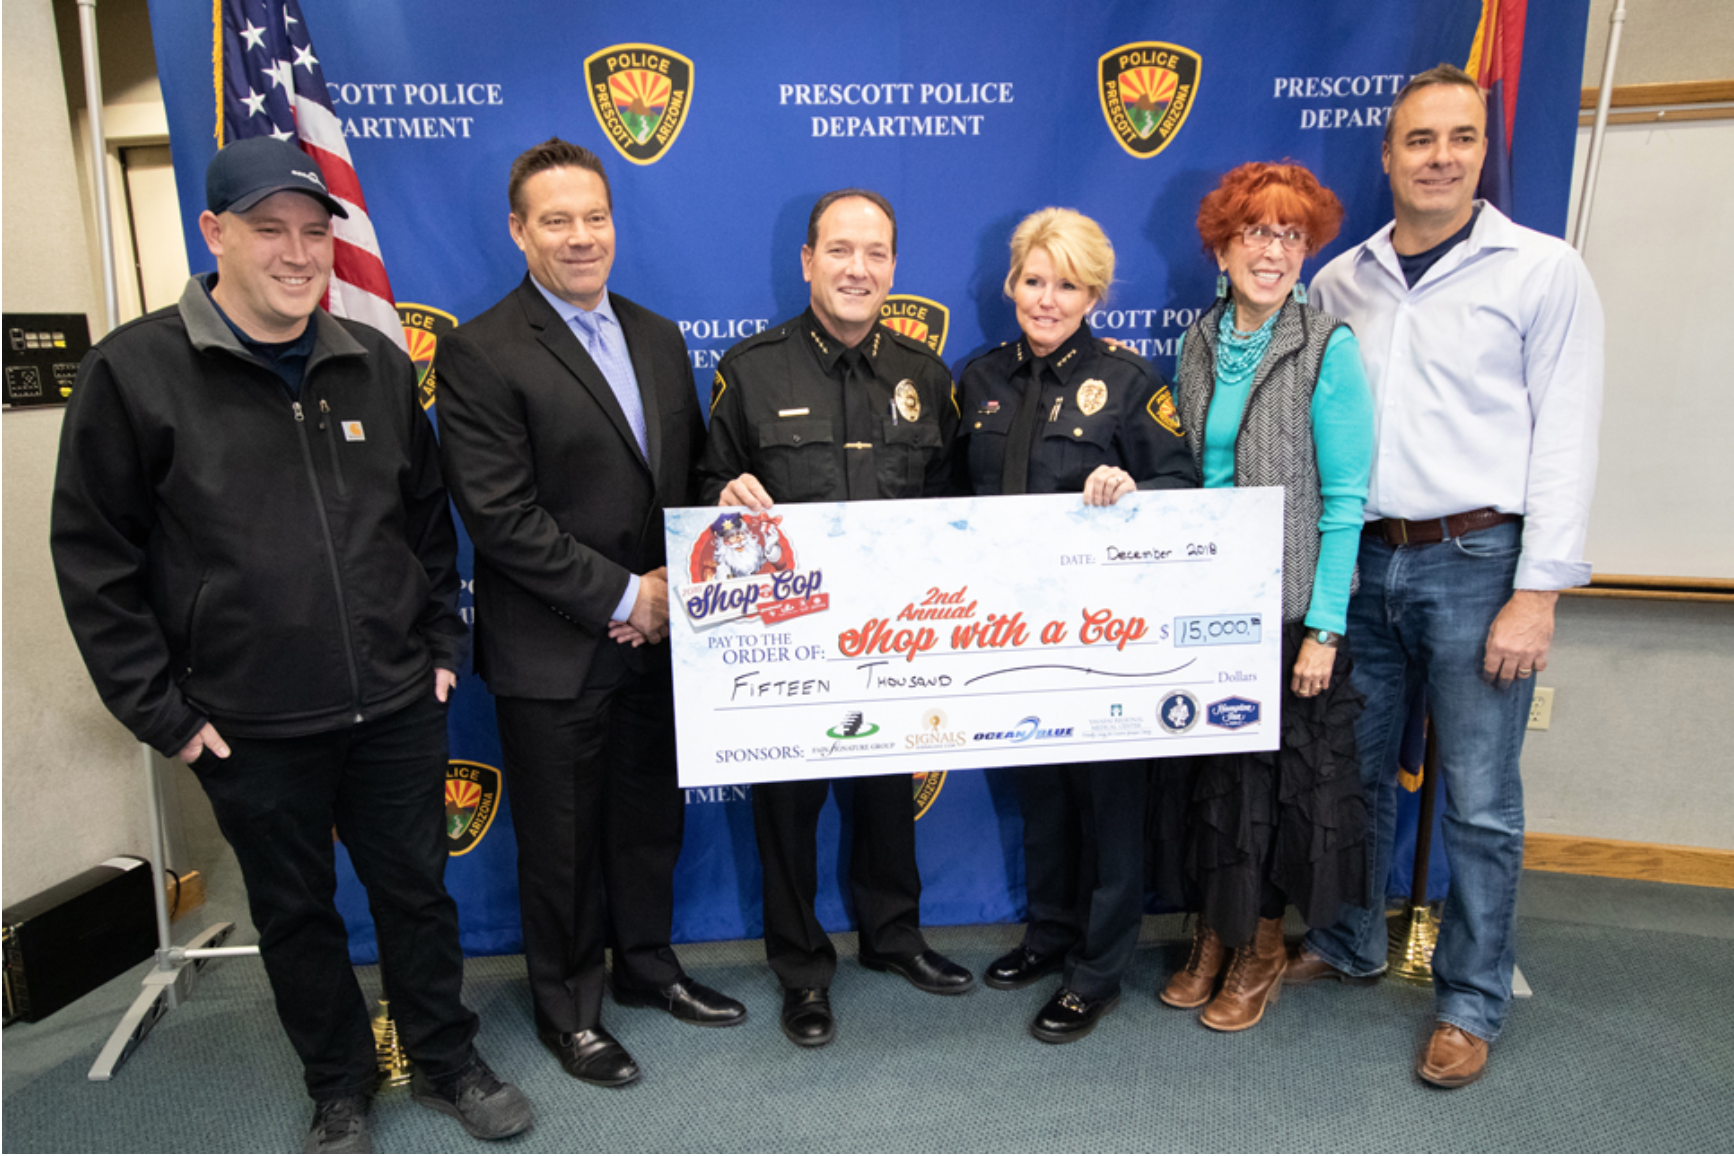 Fain Signature Group and its Multimedia Division Help Raise $15,000 for Cops and Kids